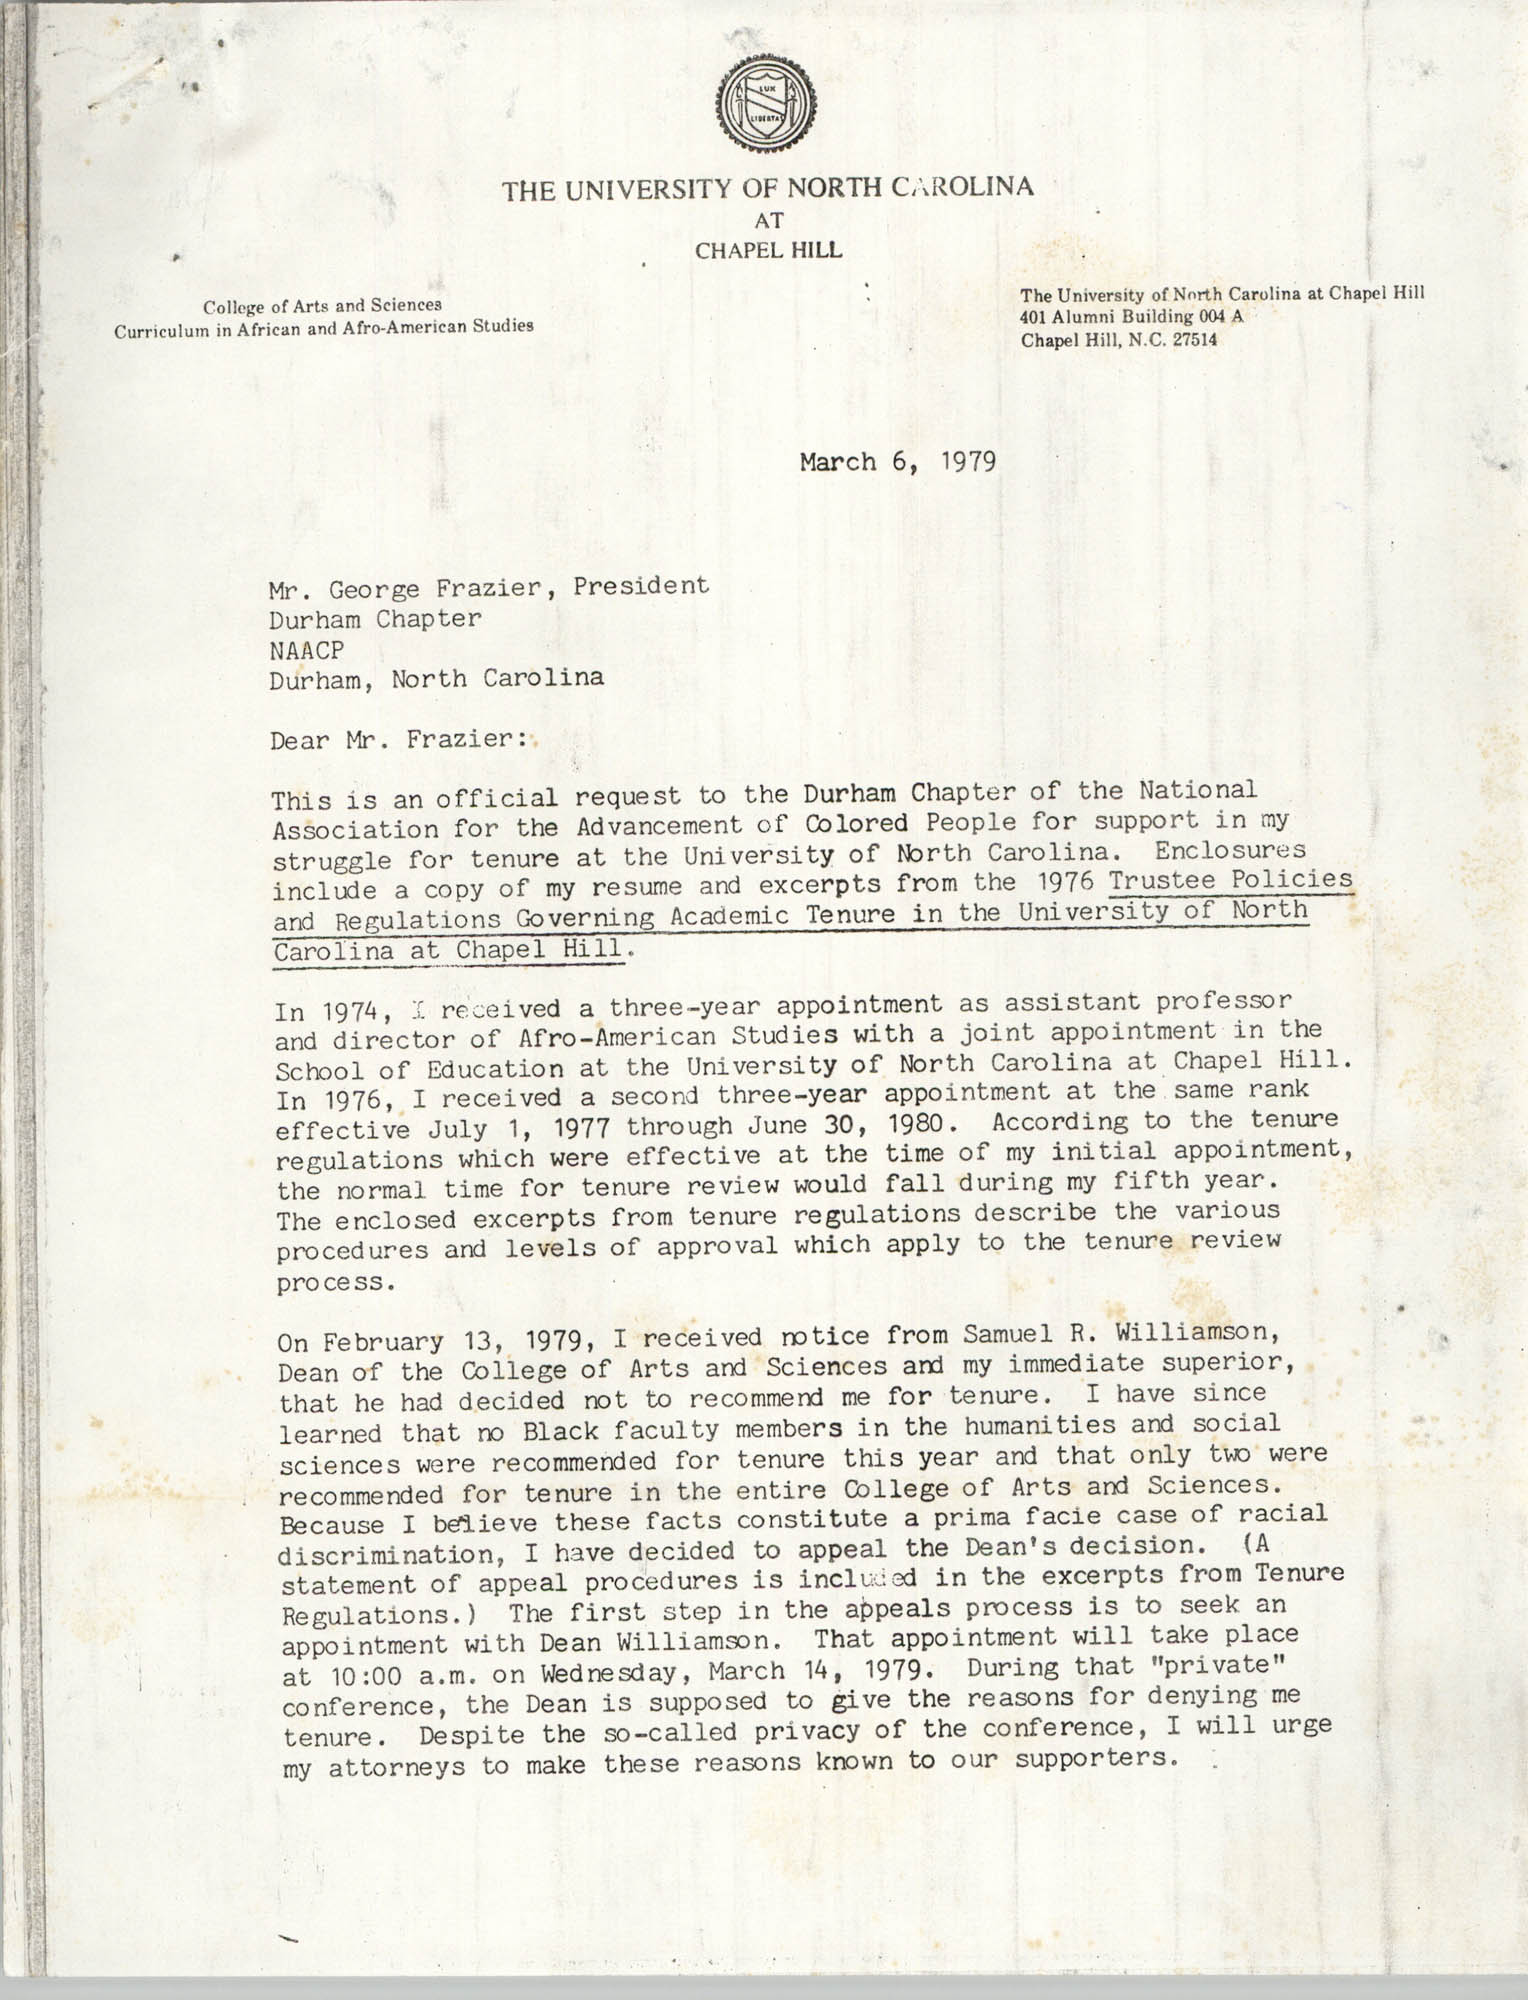 Letter from Sonja H. Stone to George Frazier, March 6, 1979